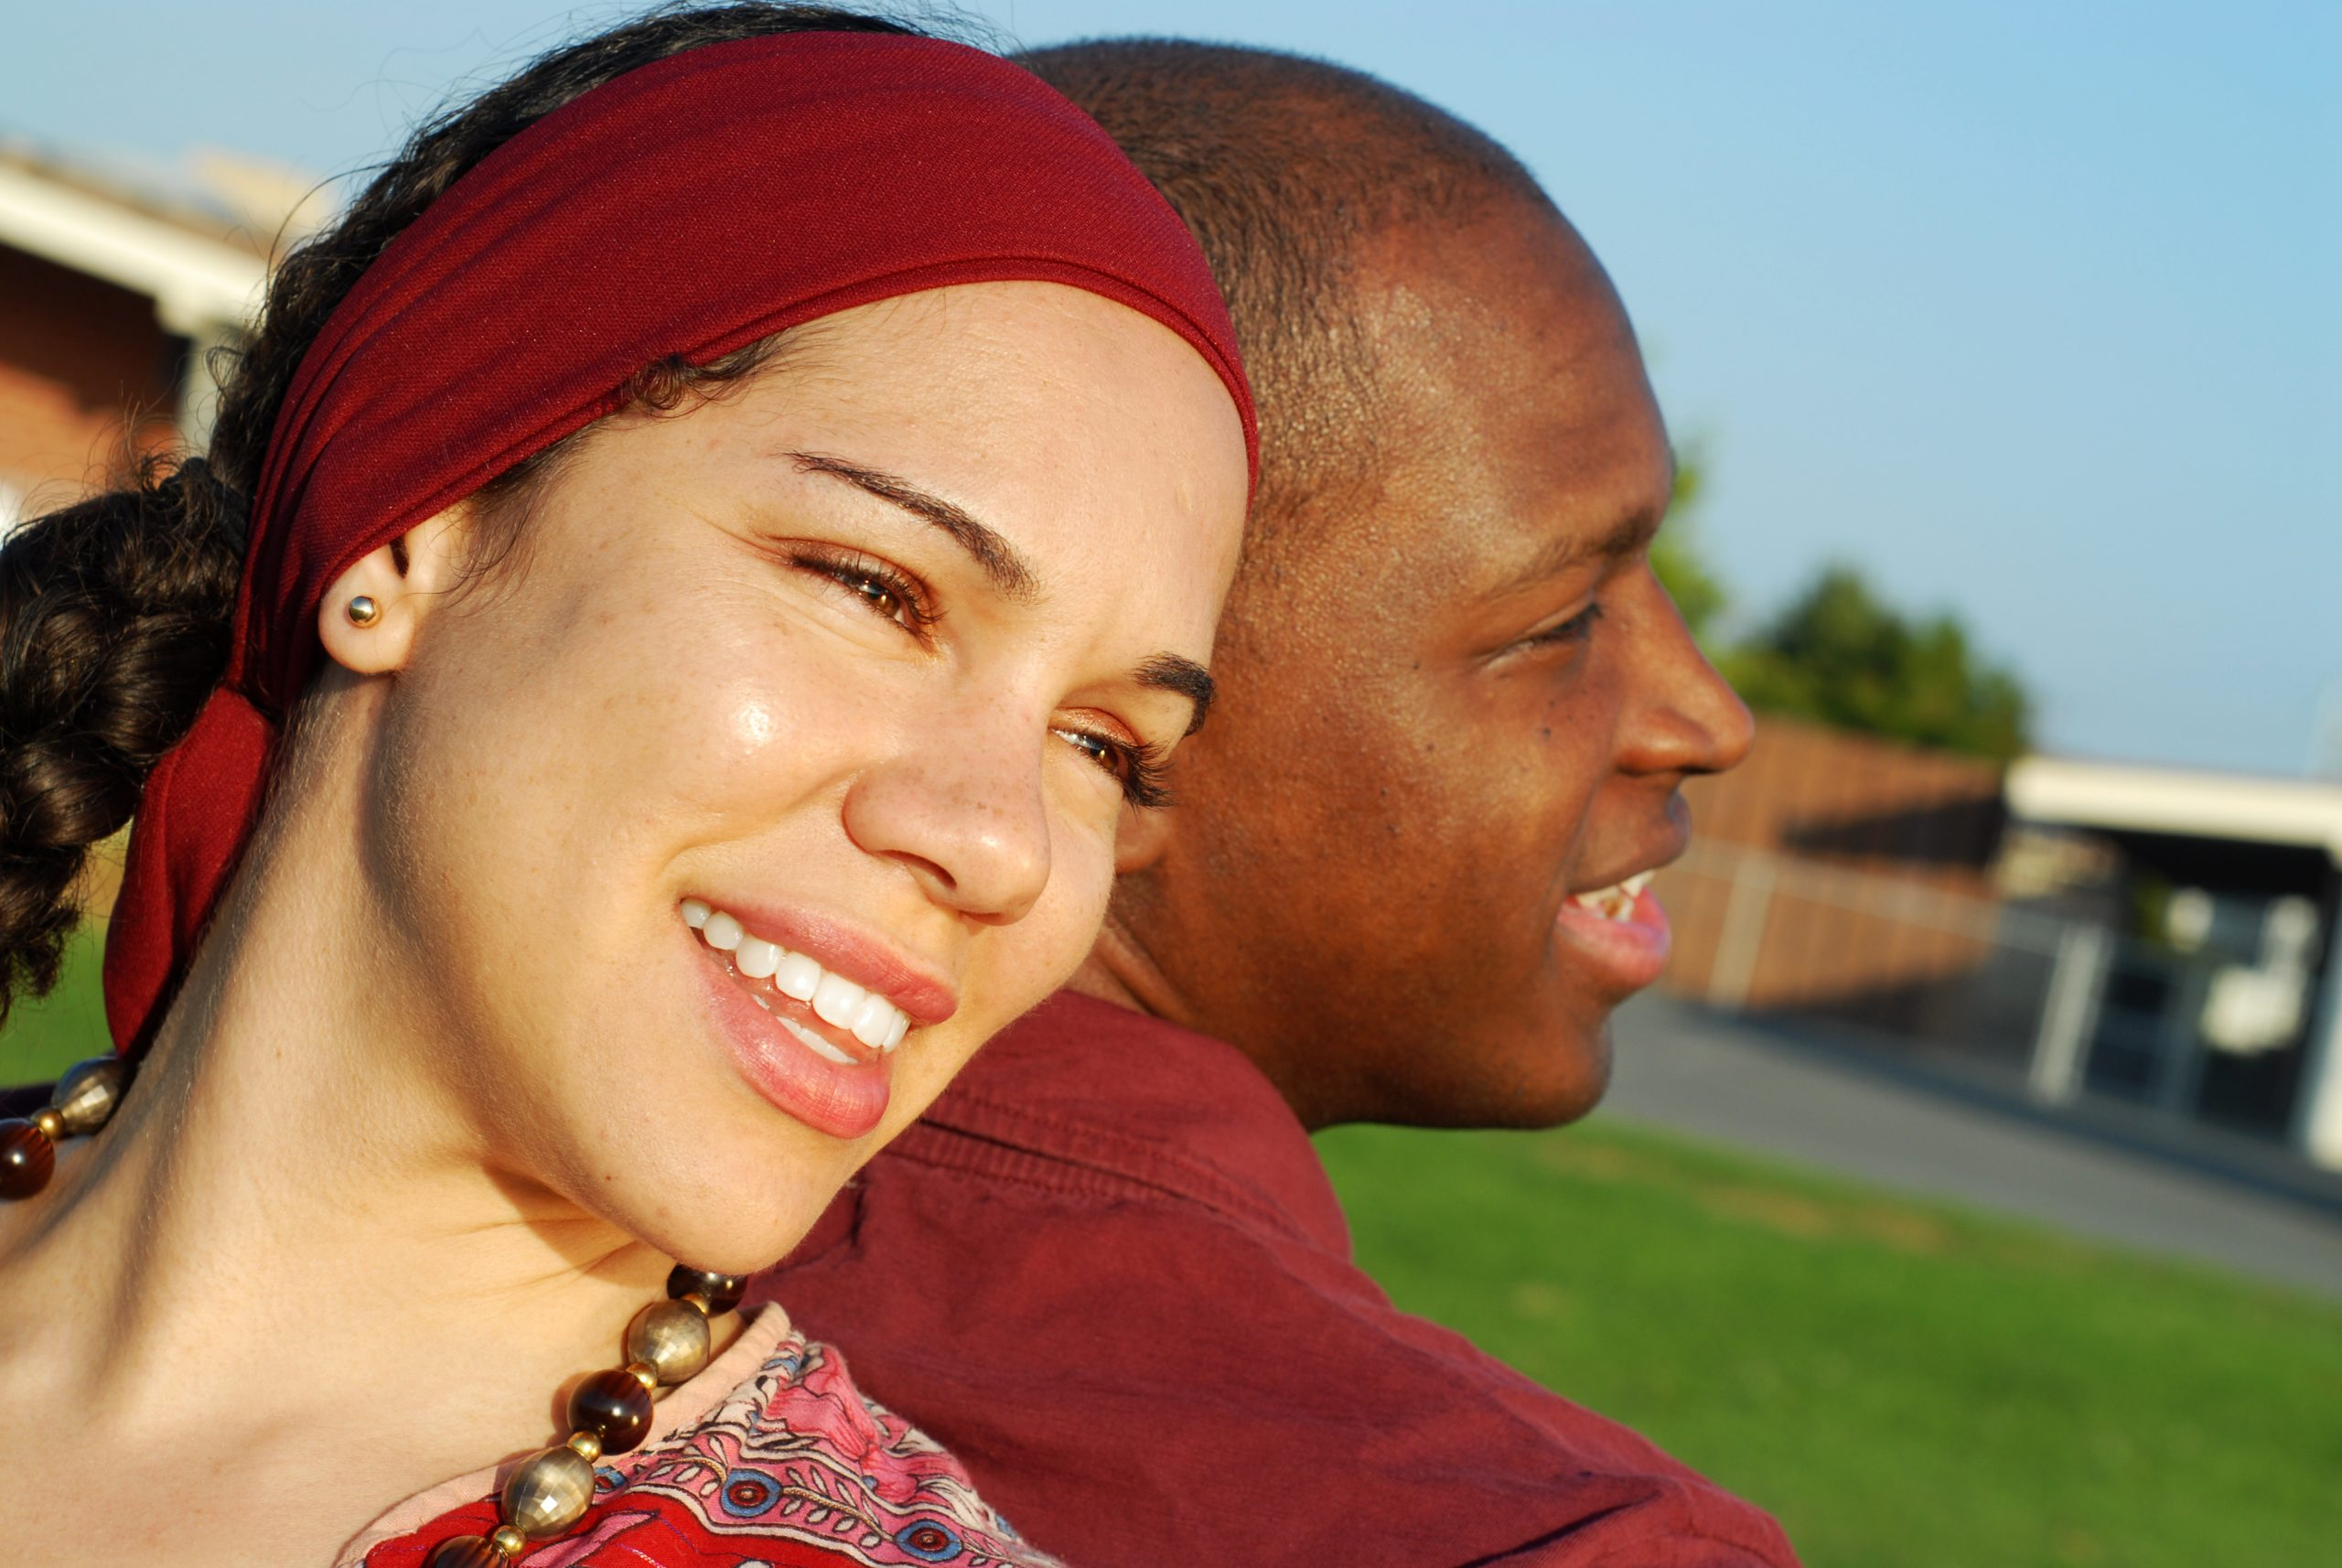 An Outward Focus (Finding the Purpose of Marriage)